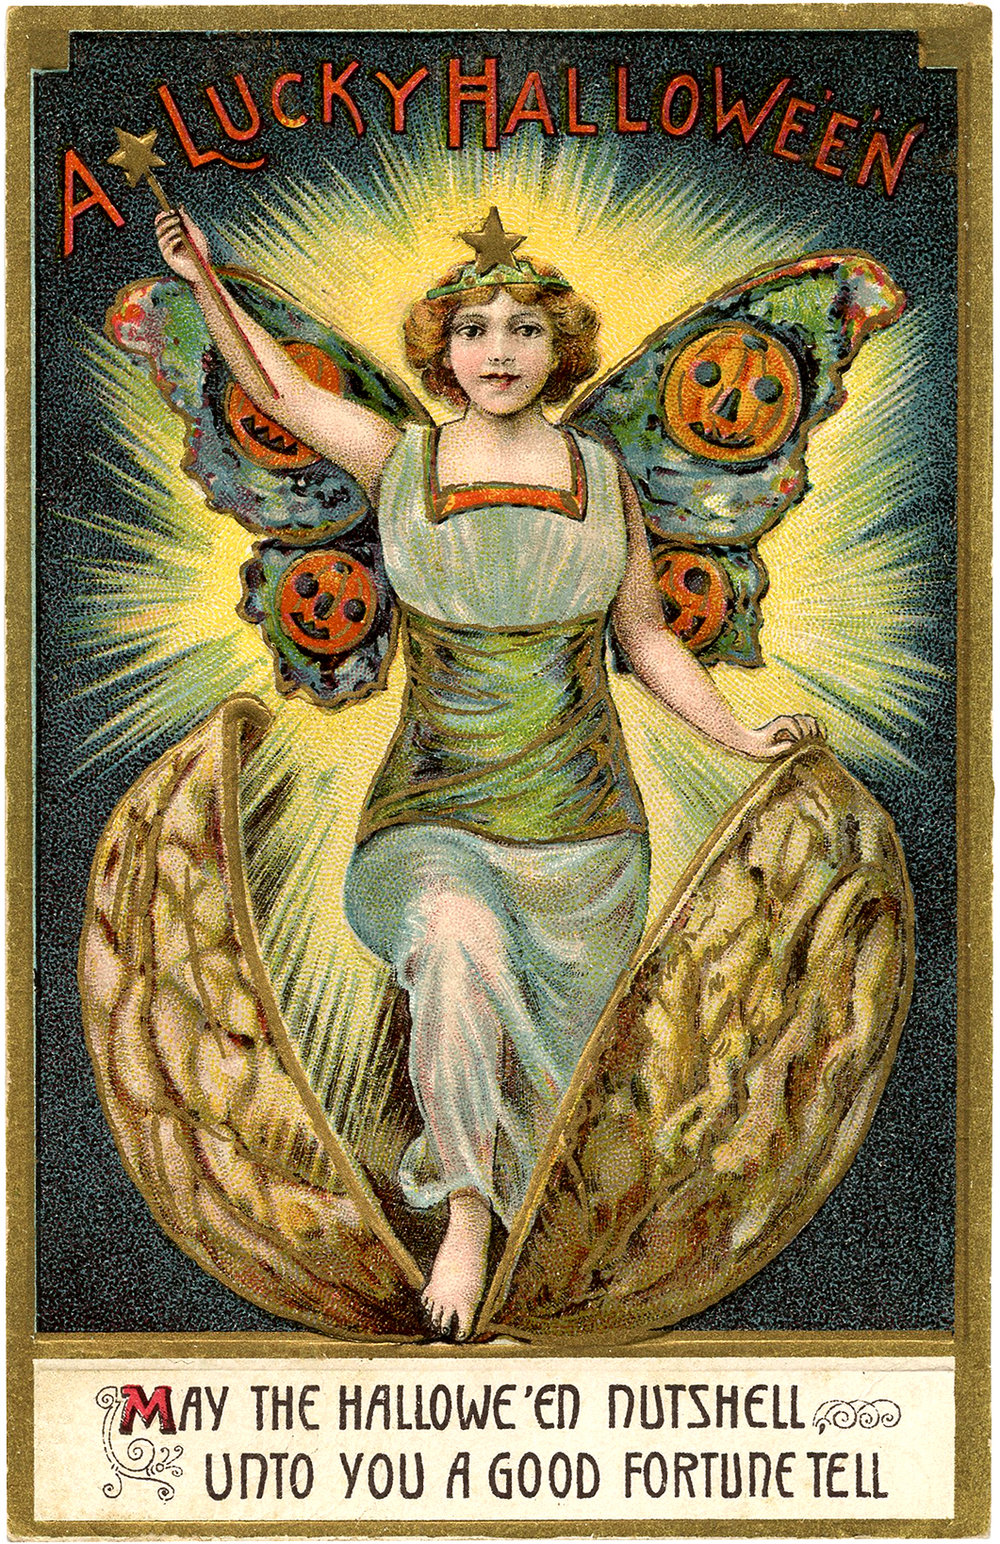 Halloween has its dark side — but it can also be a time of good luck